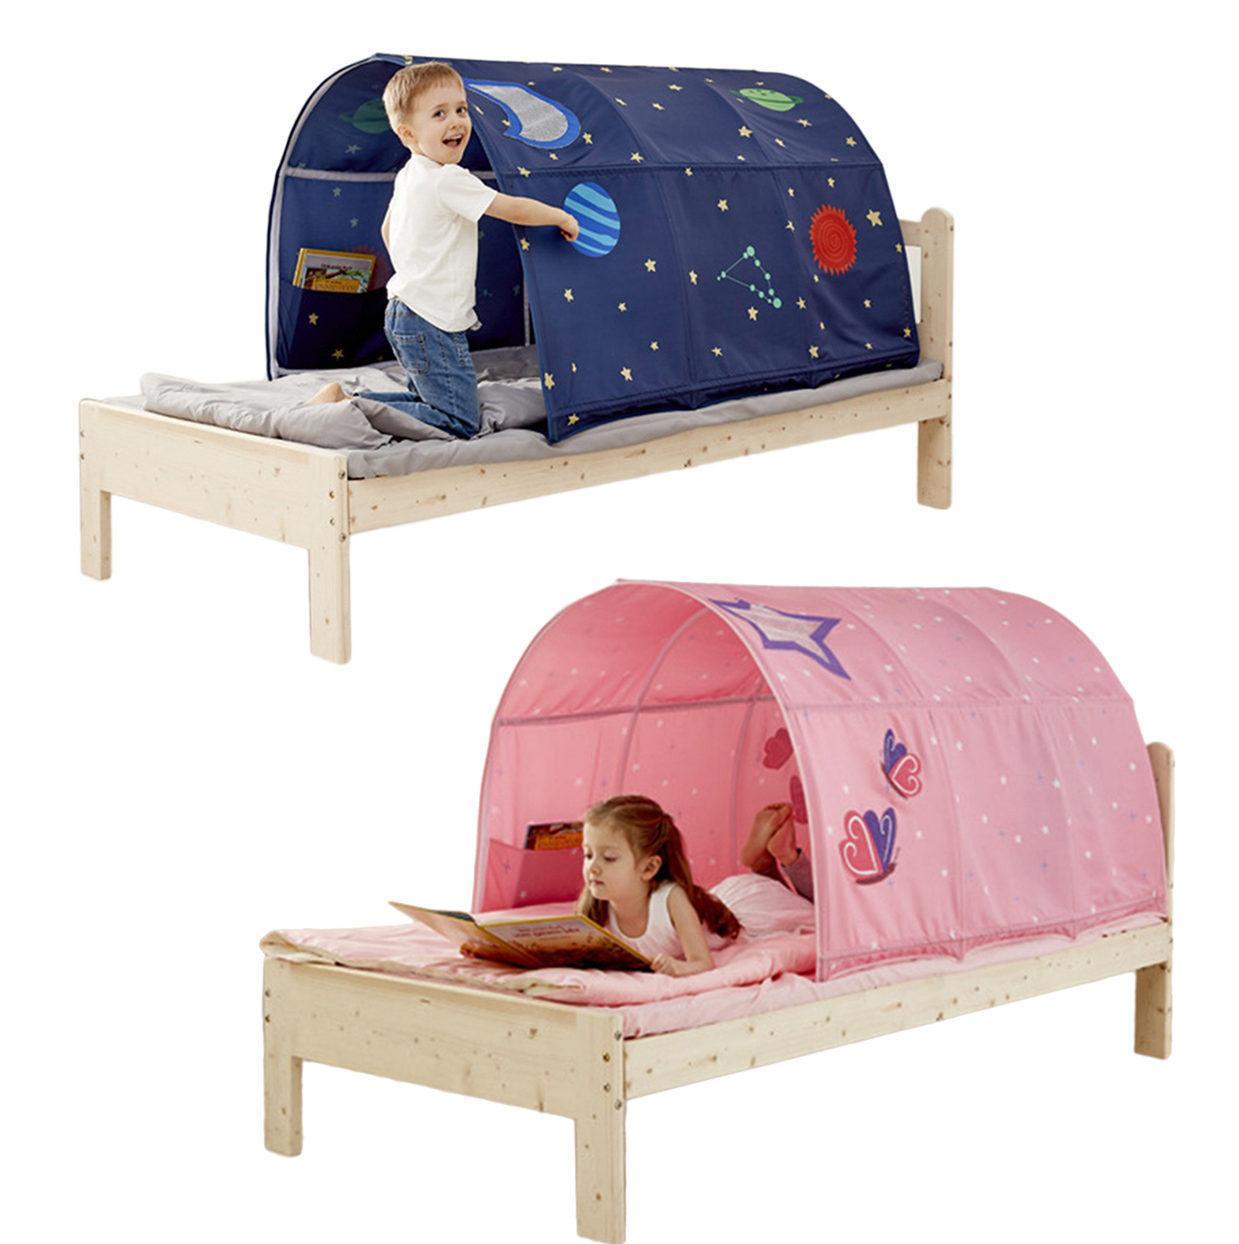 Kids Dream Tent Pop up Wonderland Snow Foldable Castle Playhouse Indoor Play Bed